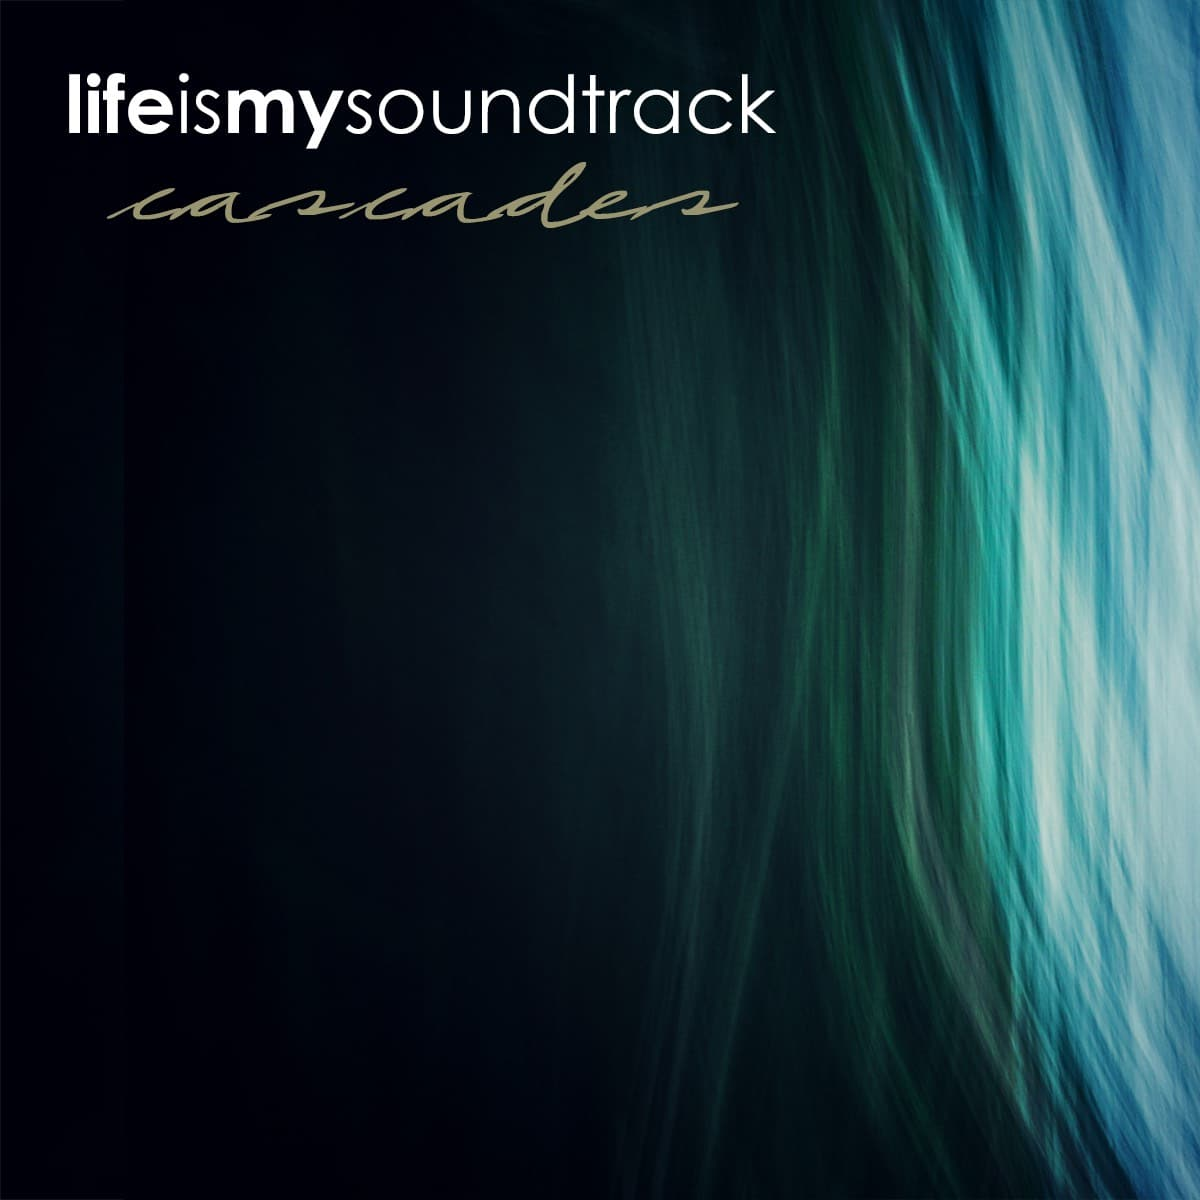 The album Cascades by Life Is My Soundtrack - Ambient soundscapes, pianos, and impacts combined with light arpeggios